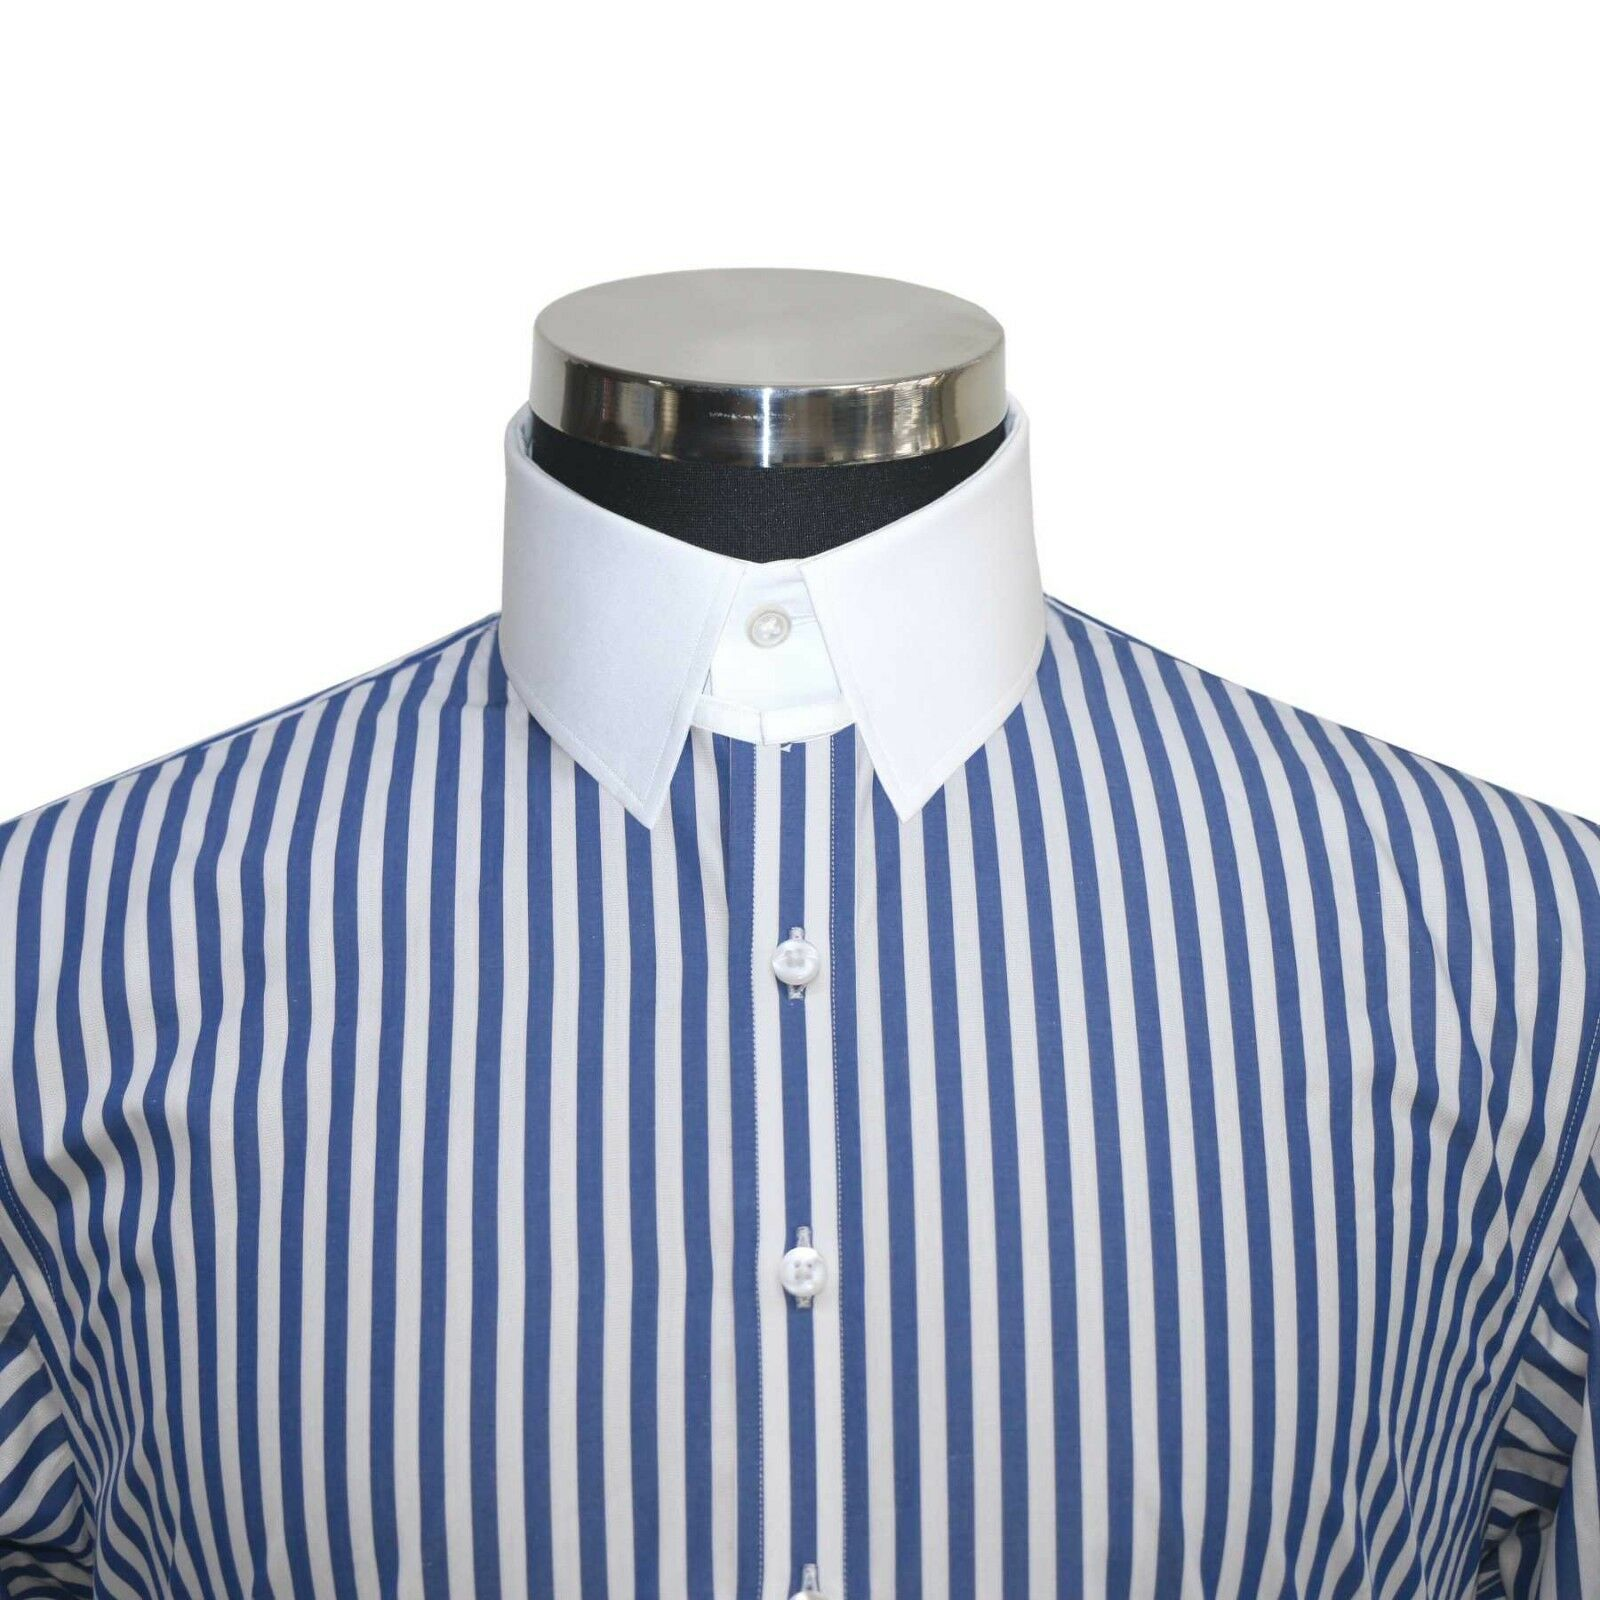 Tab collar  Herren cotton shirt Navy Blau Weiß stripes Loop James Bond collar Gent